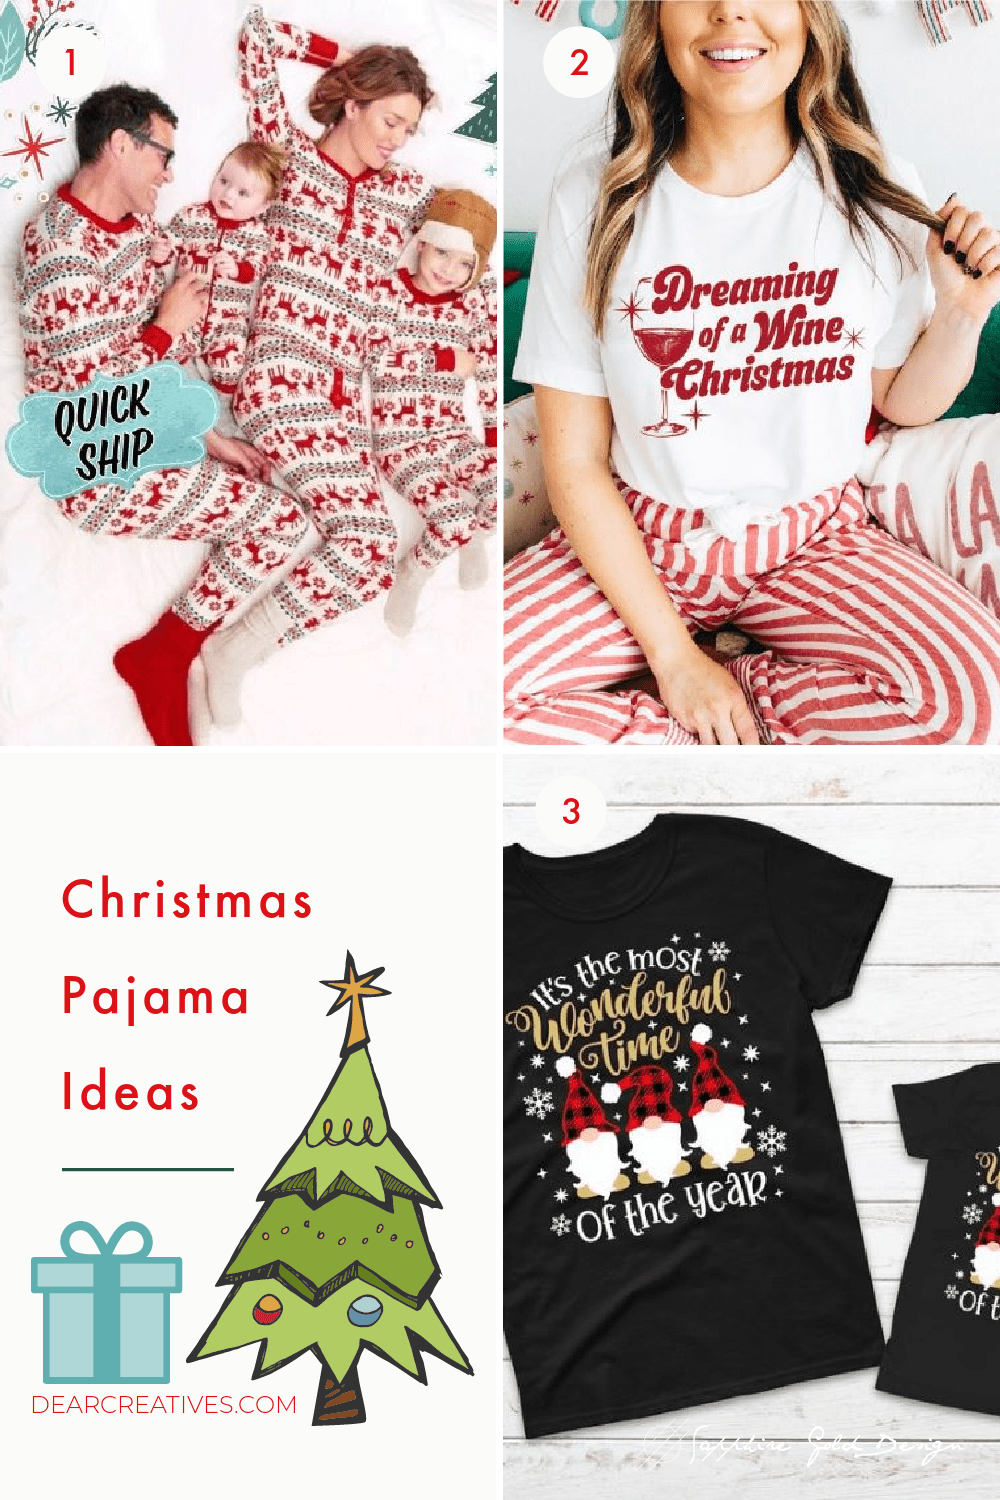 10+ Christmas Pajama Ideas To Make Staying In Fun!